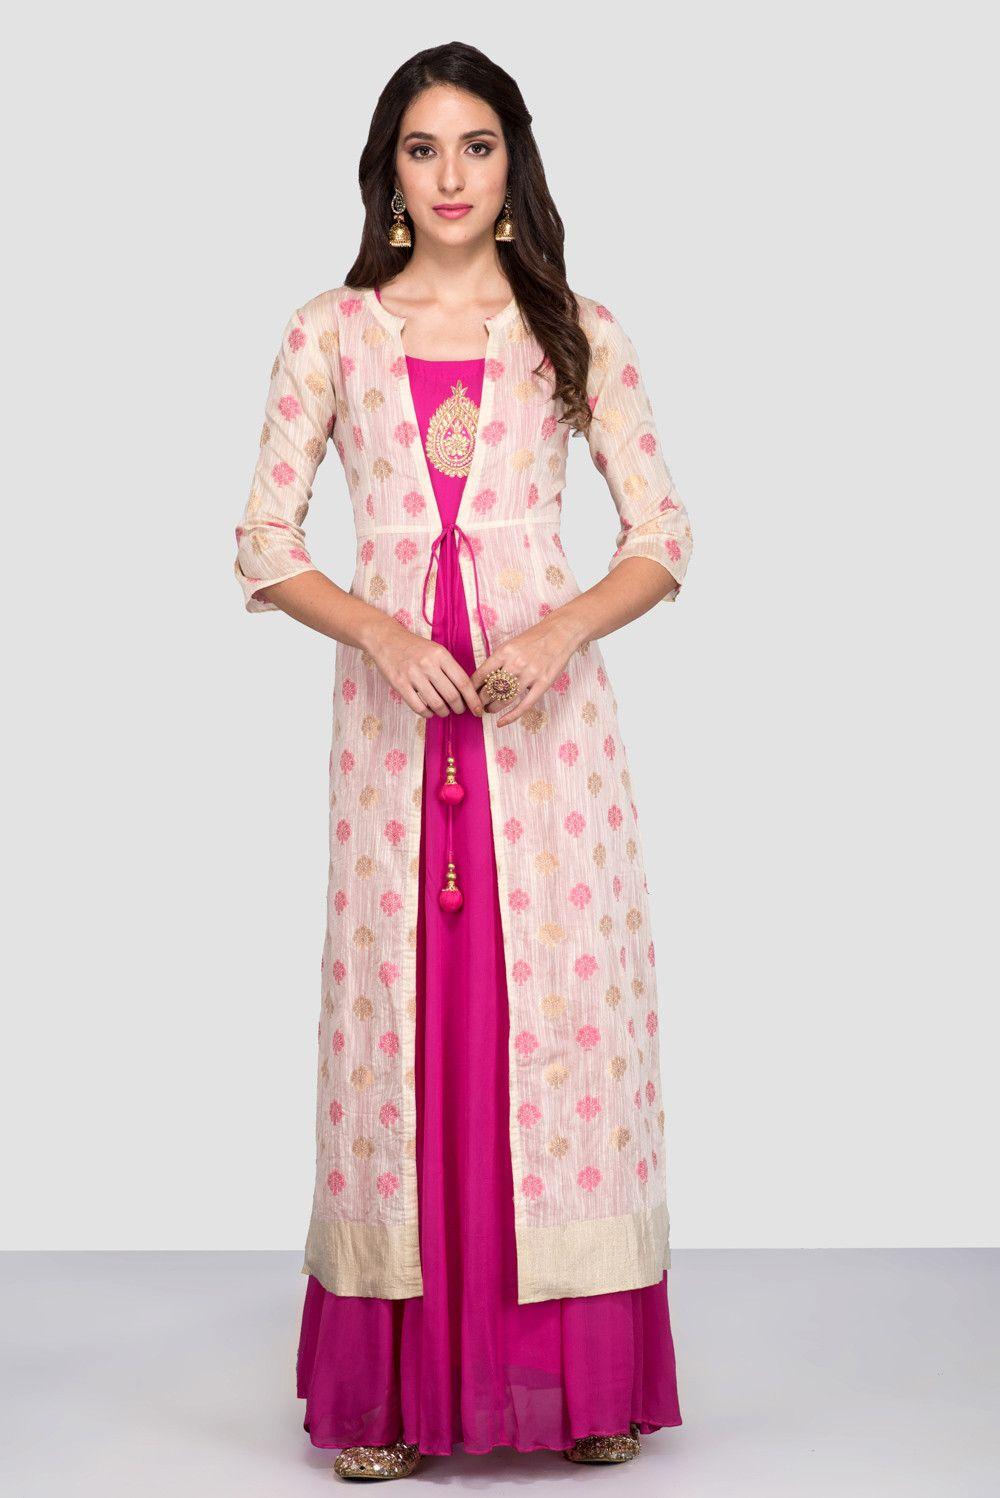 Party Wear Heavy Kurtis For Marriage (11)